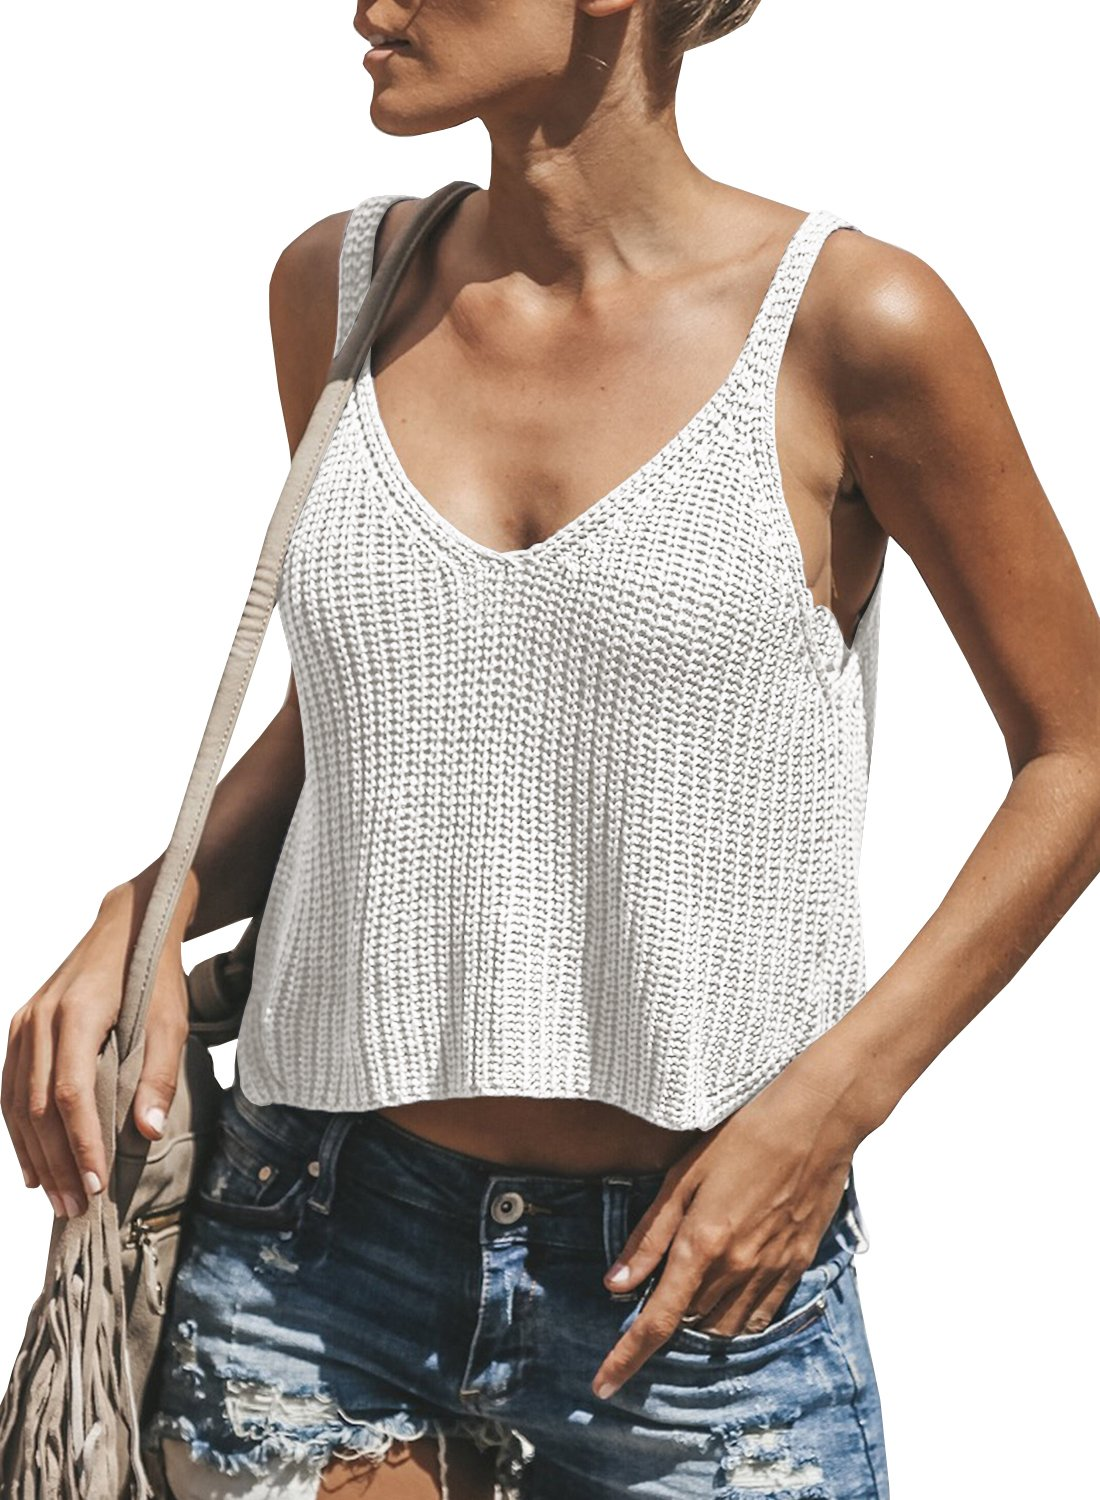 Ivay Women's Sleeveless Sweater Crop Top Solid Spaghetti Strap Knitted Tank